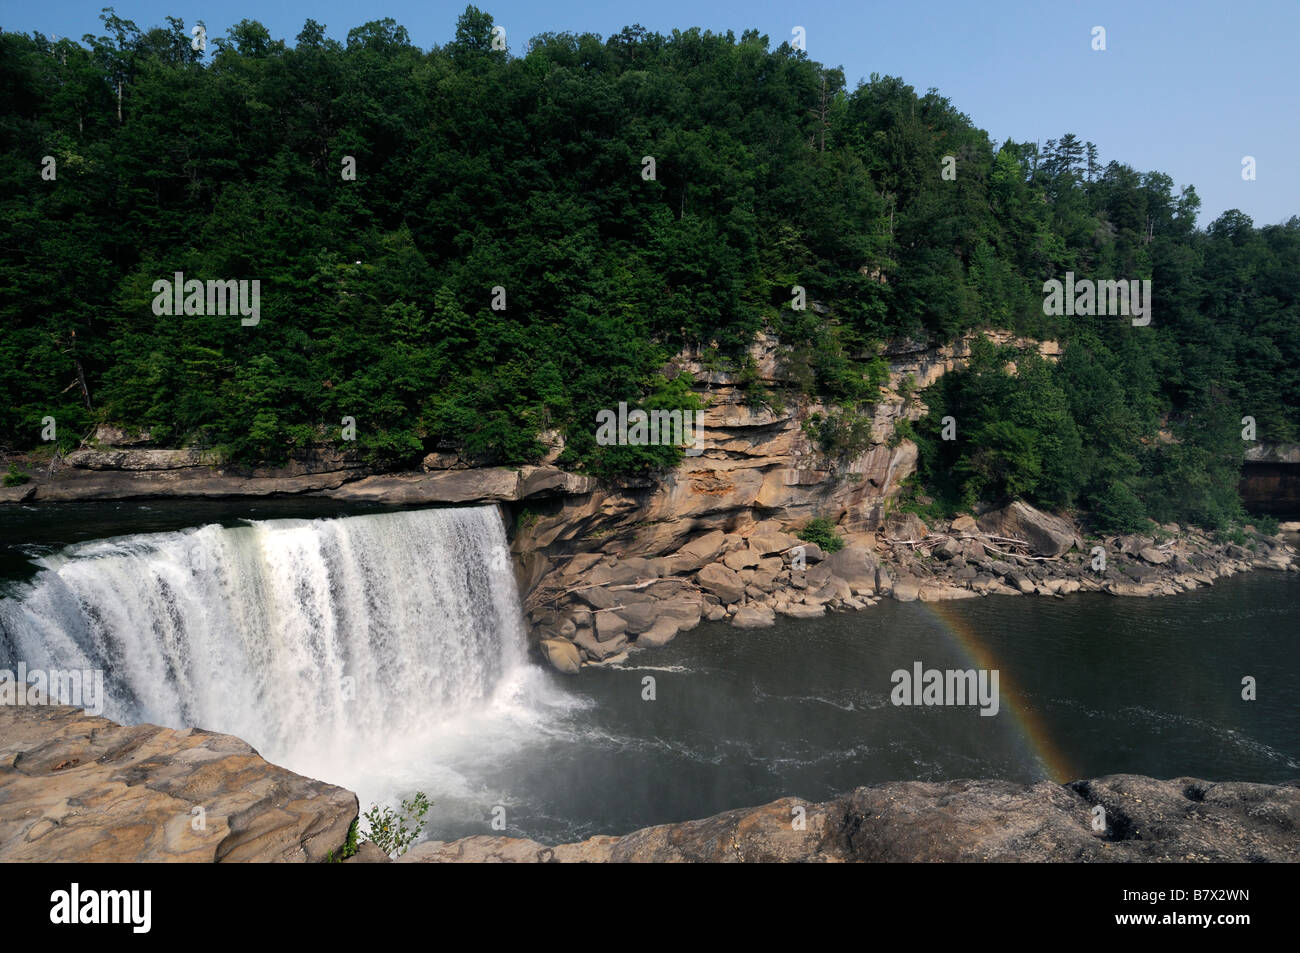 Whitley County High Resolution Stock Photography And Images Alamy